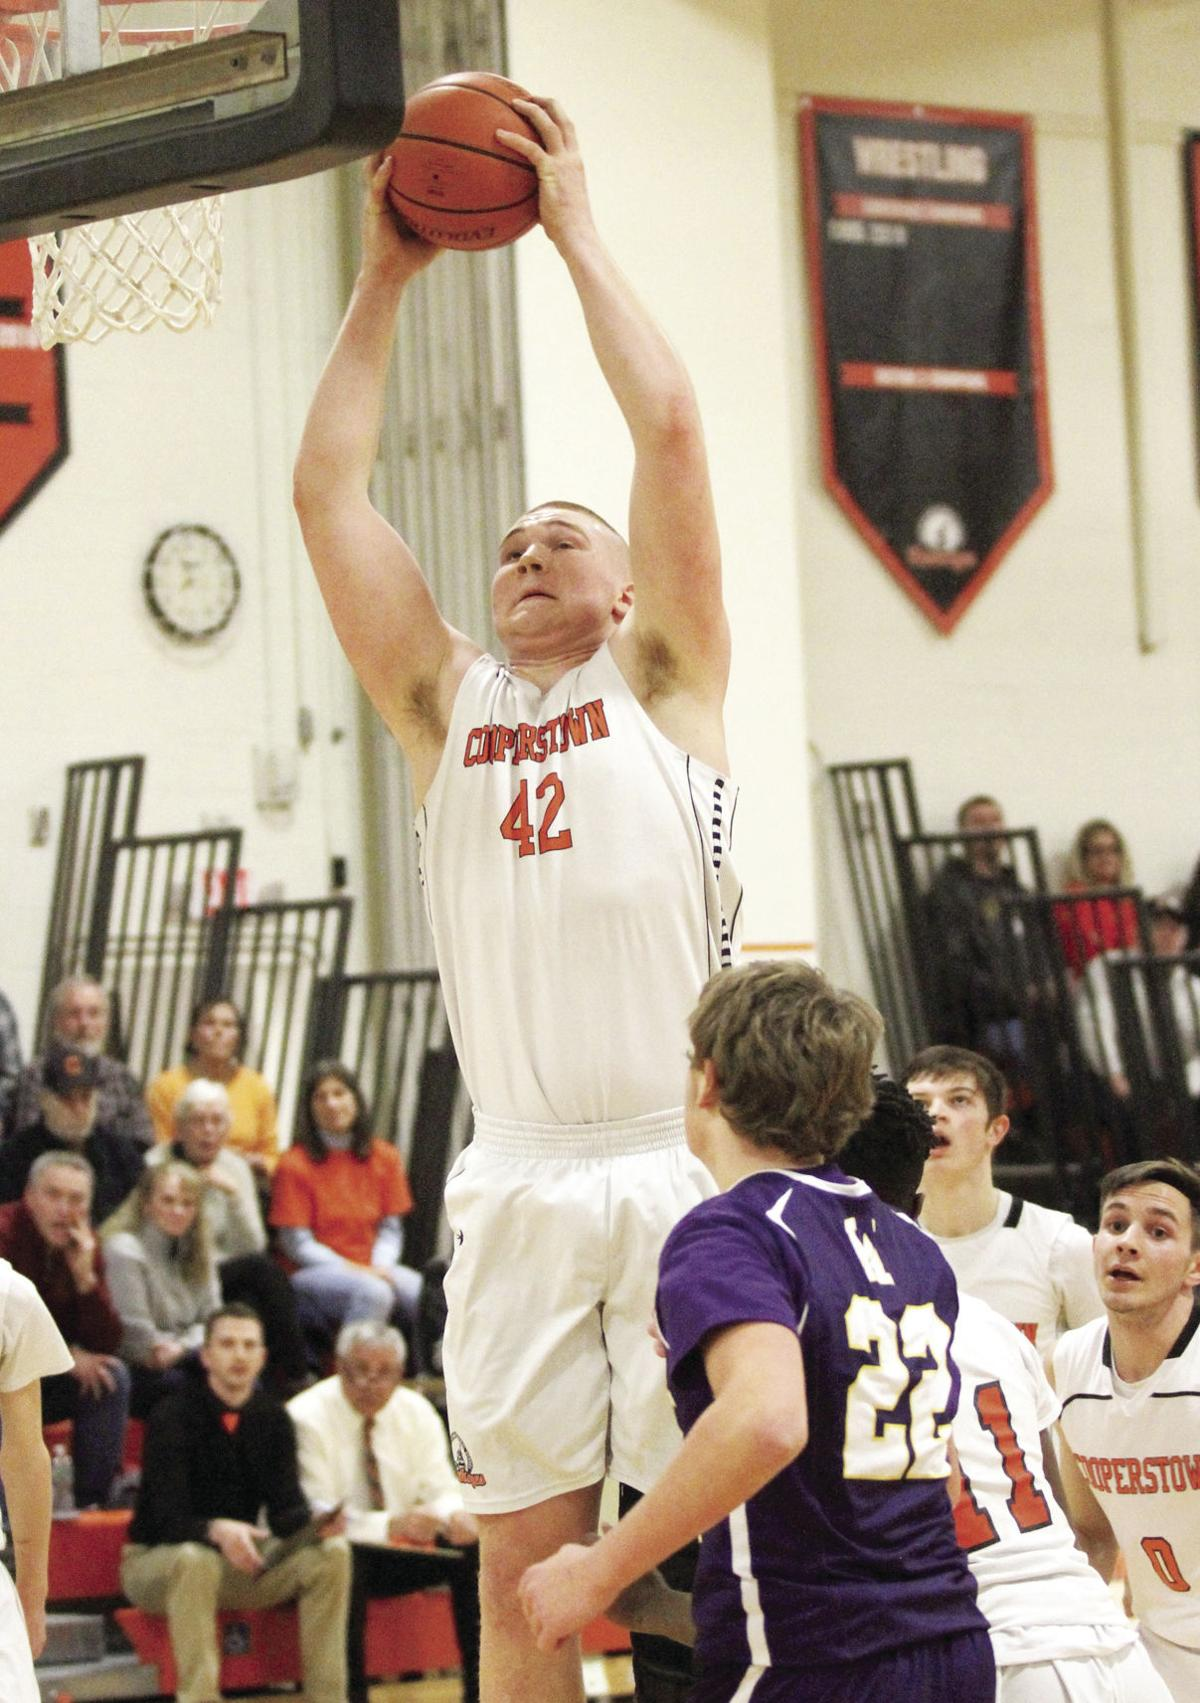 Coop basketball teams advance to semifinals